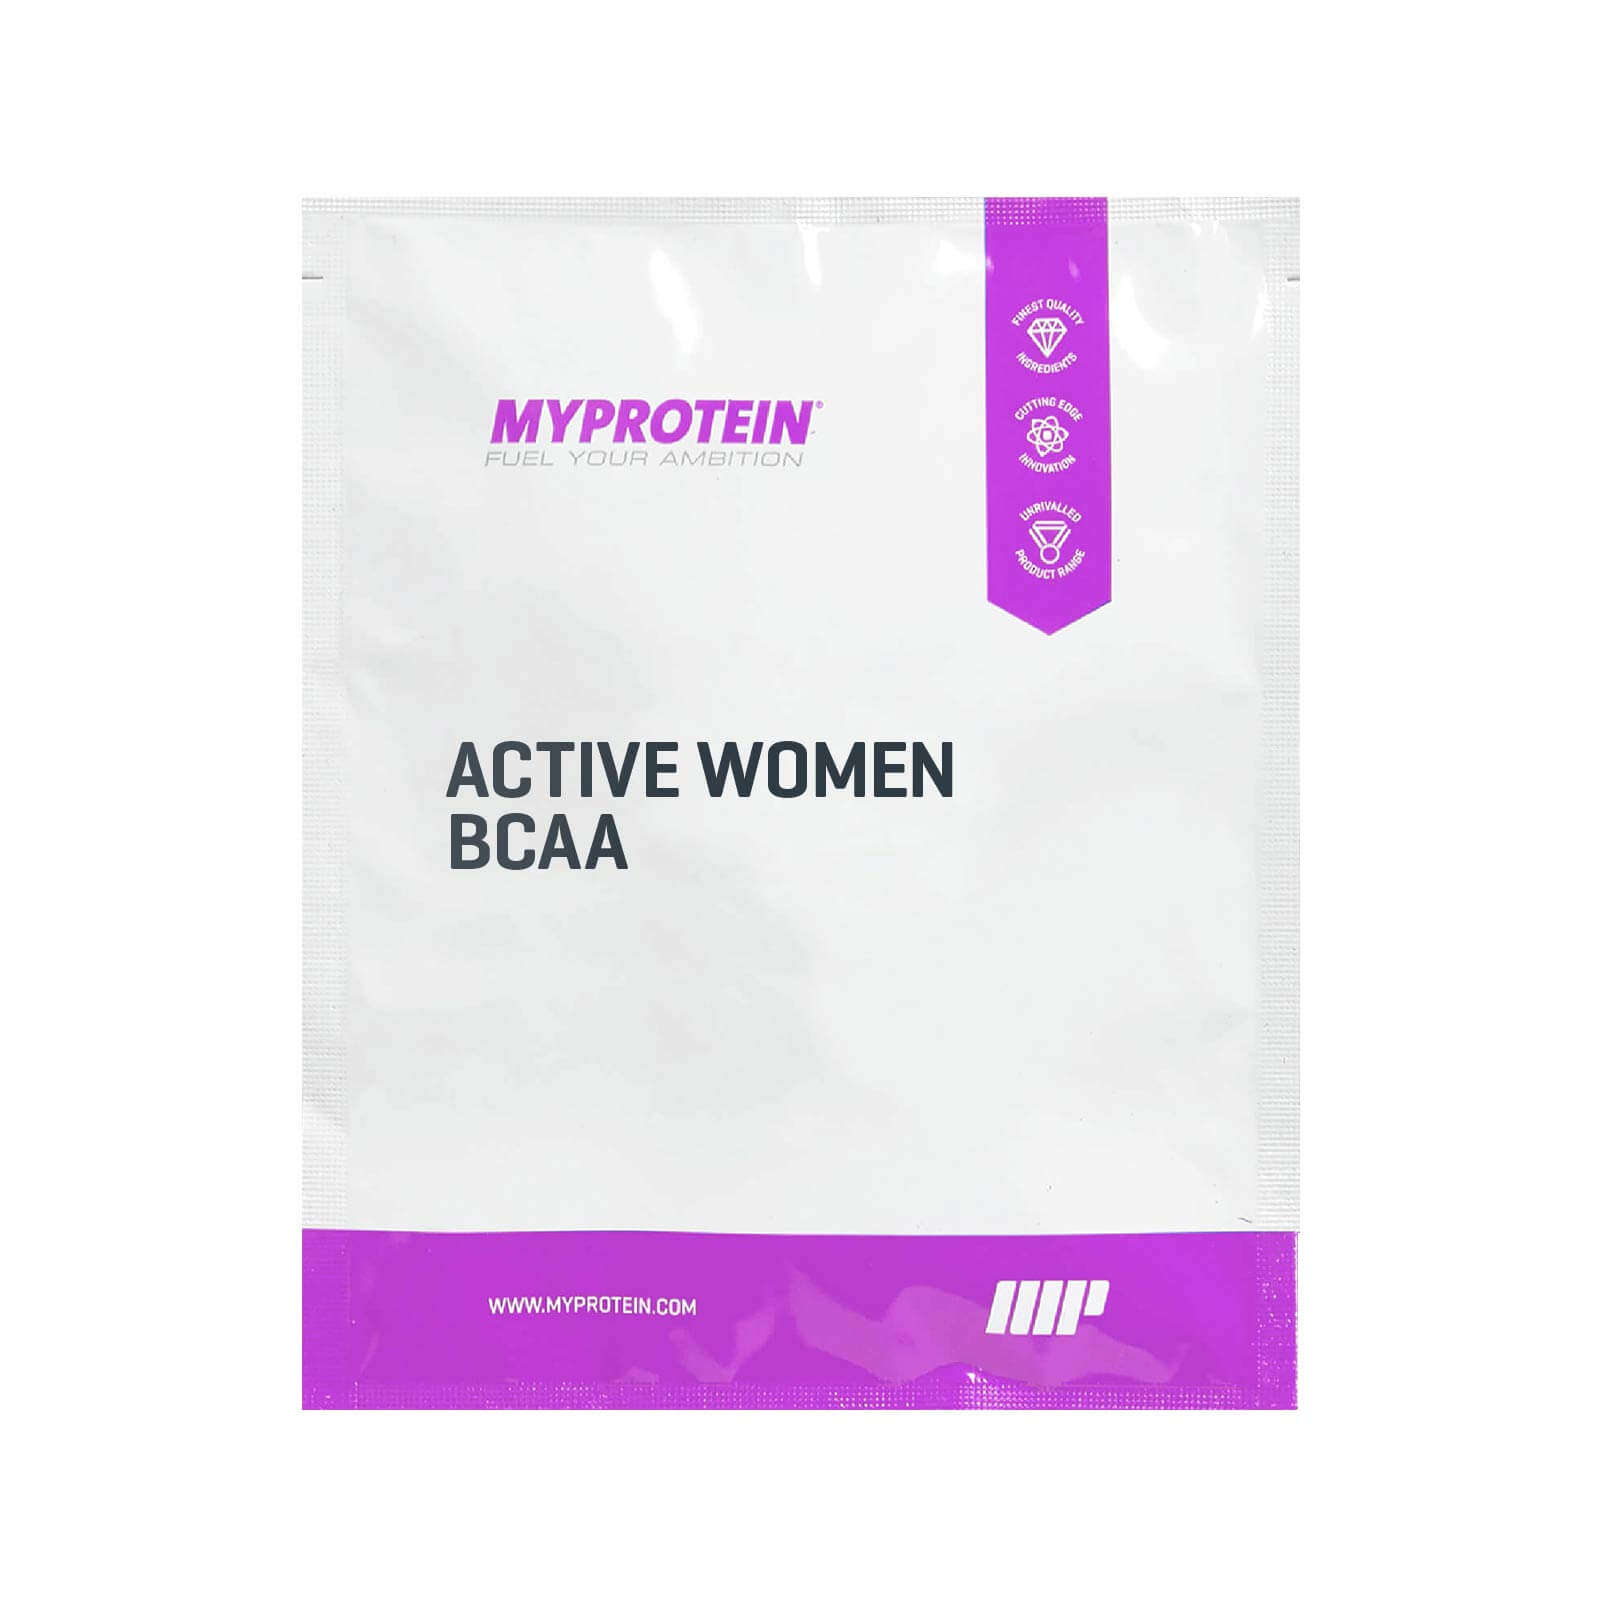 Active Women BCAA (Sample), Cranberry and Pomegranate - 20g